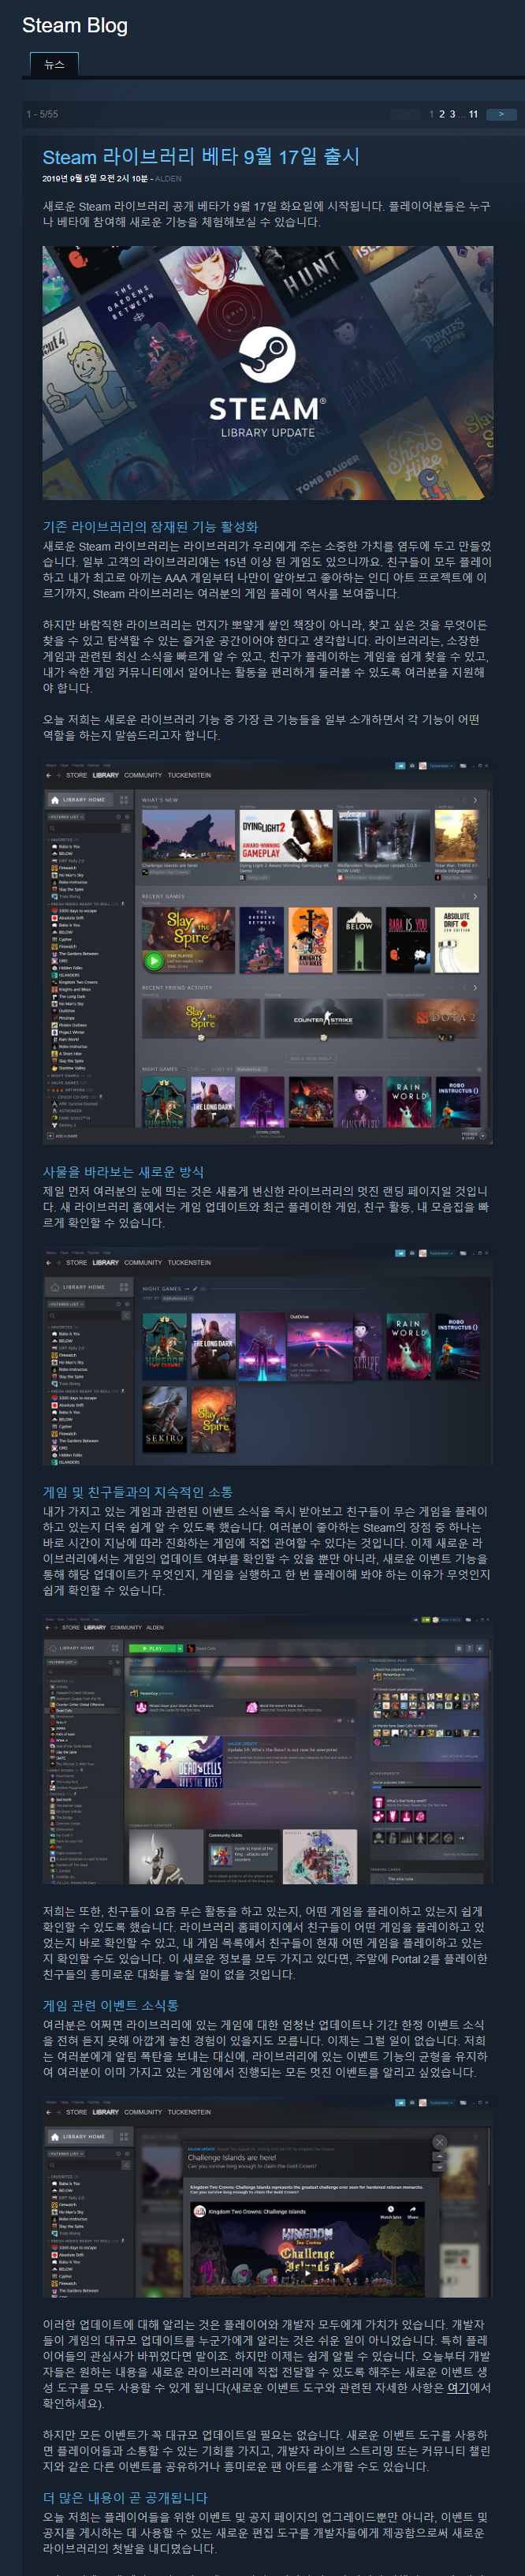 FireShot Capture 001 - Steam Blog __ 그룹 공지 - steamcommunity.com.png